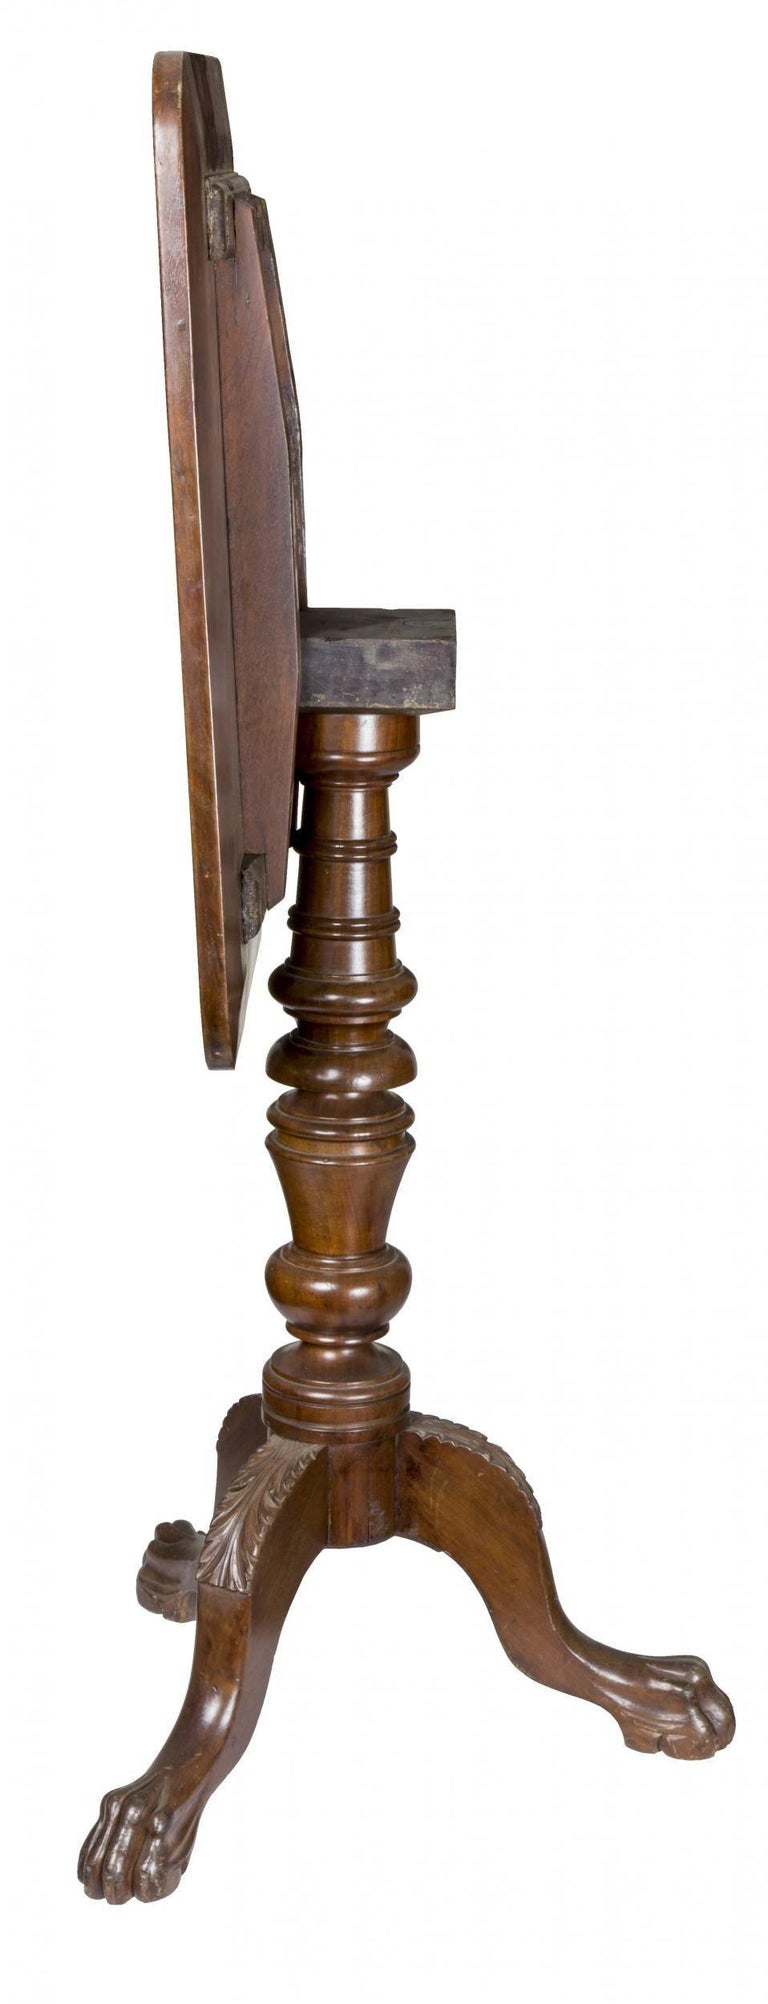 This candle stand exhibits a vigorously turned column supported on three cabriole legs with carved acanthus molding and strong paw feet. It is of heavy, dense mahogany and is robust in its appearance. The top support is interestingly executed with